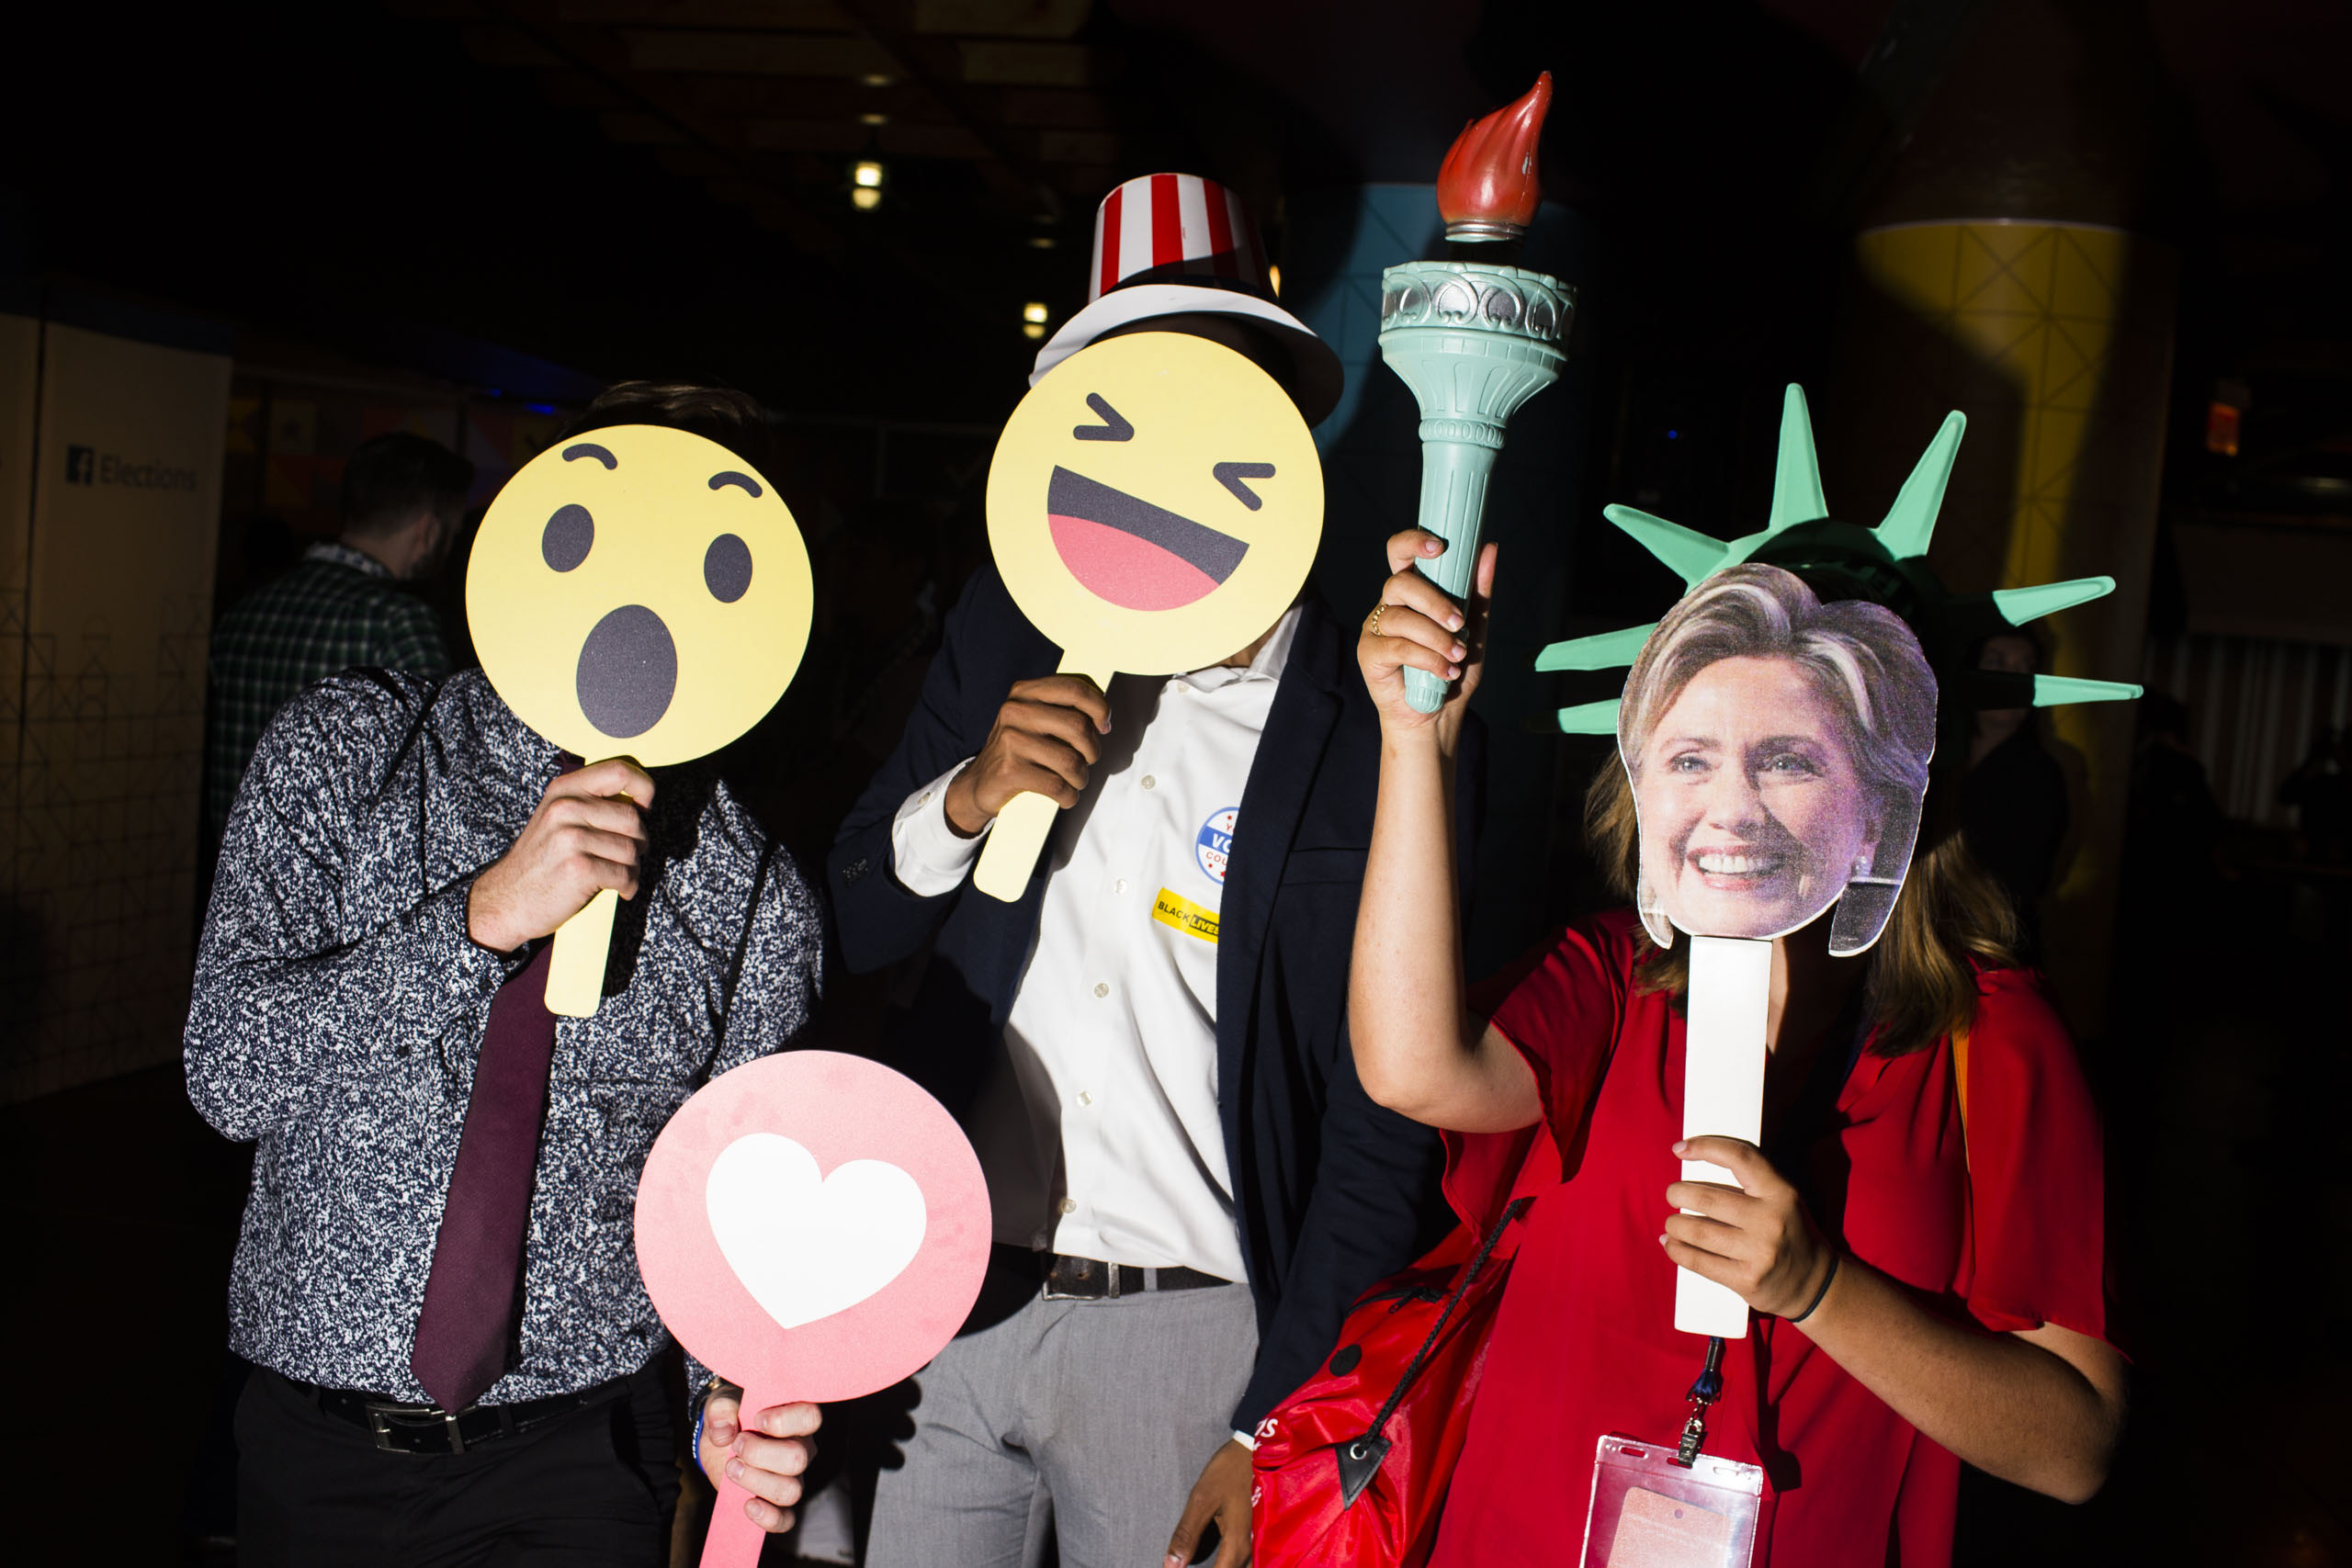 Members of College Democrats of America pose for pictures in the Instagram/ Facebook lounge at the 2016 Democratic National Convention in Philadelphia, on July 25, 2016.